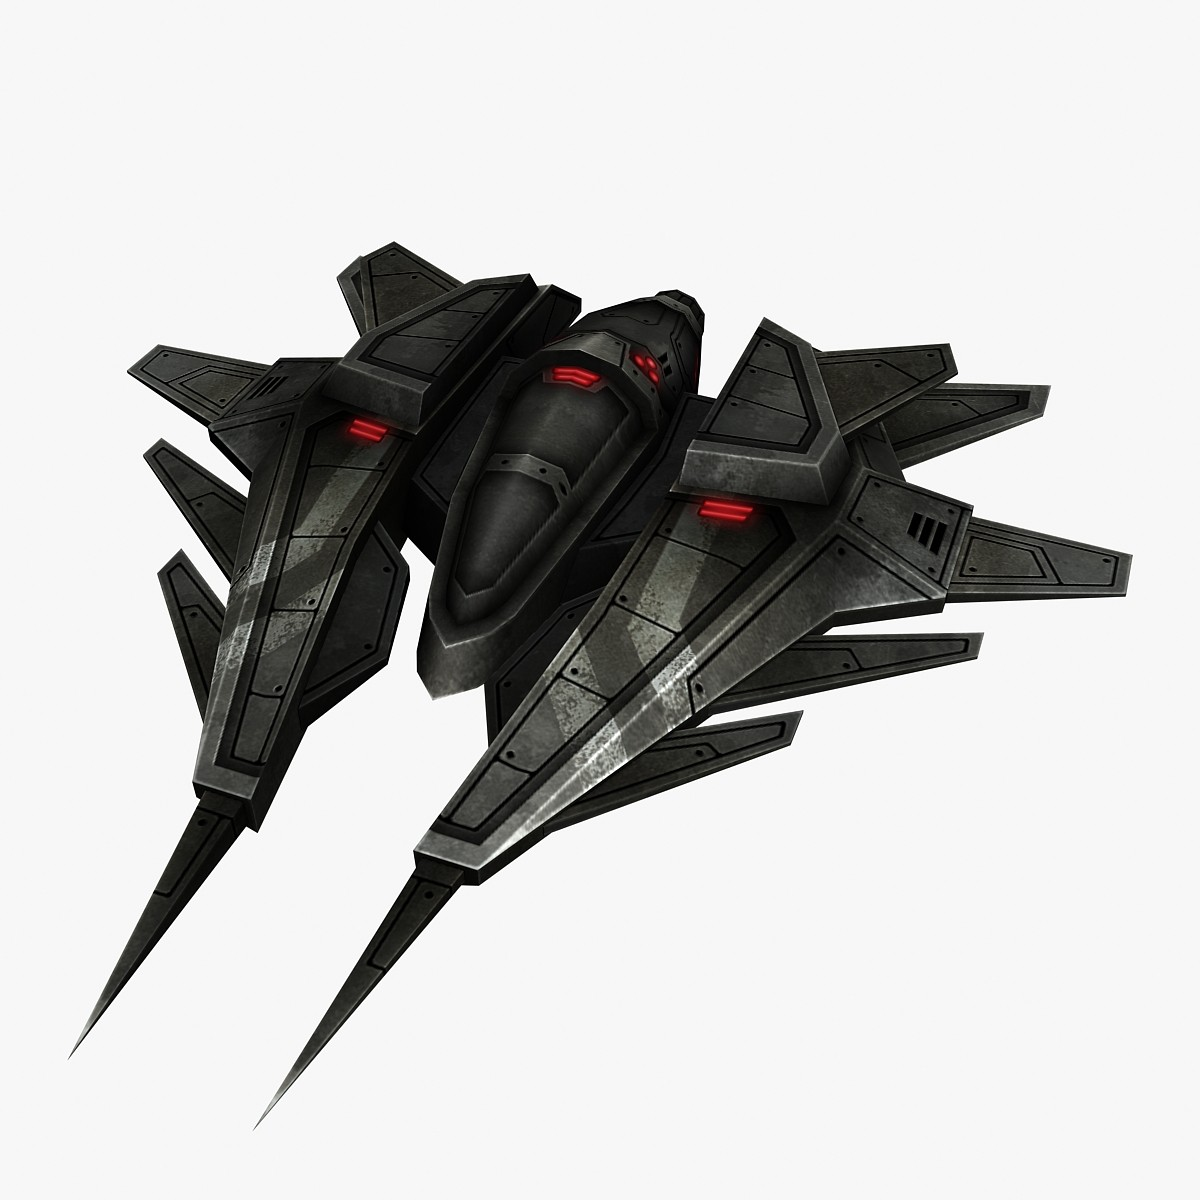 sci_fi_space_fighter_4_preview_0.jpg